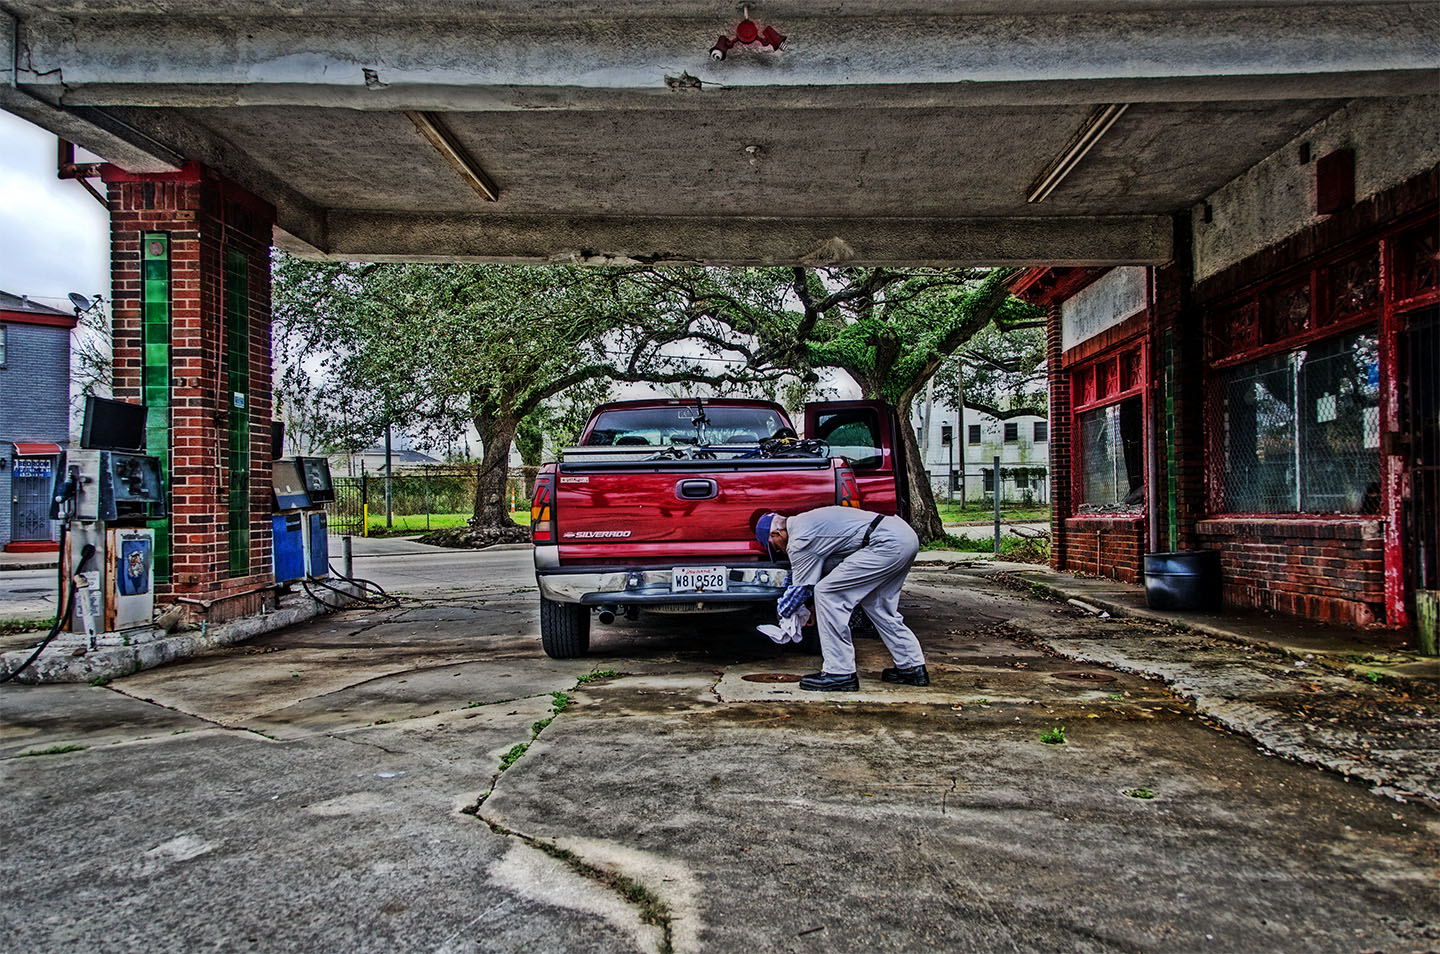 Caring for His Truck in Central City